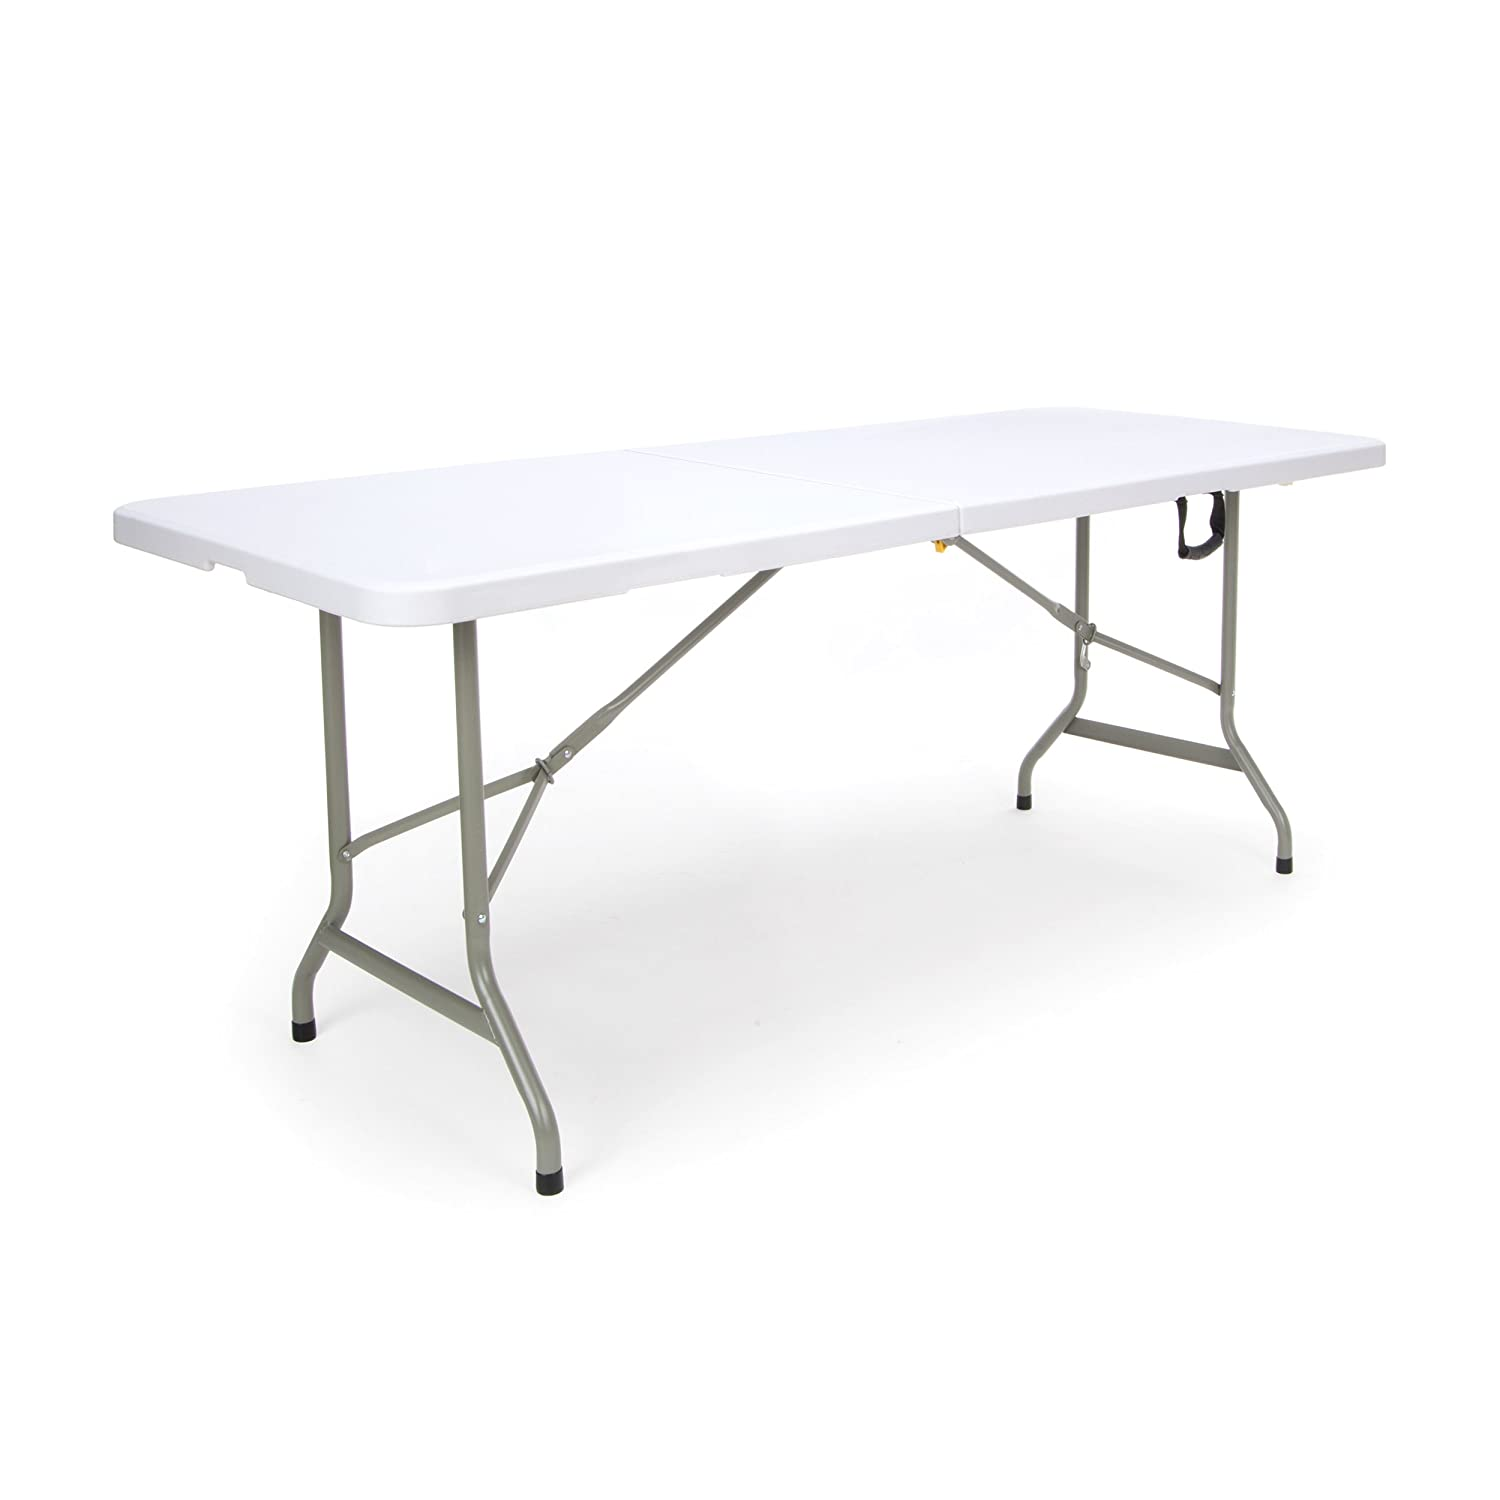 """Essentials Center Folding Multipurpose Utility Table - Sturdy Card/Conference/Office/Craft Plastic Table, 30"""" x 72"""", White"""